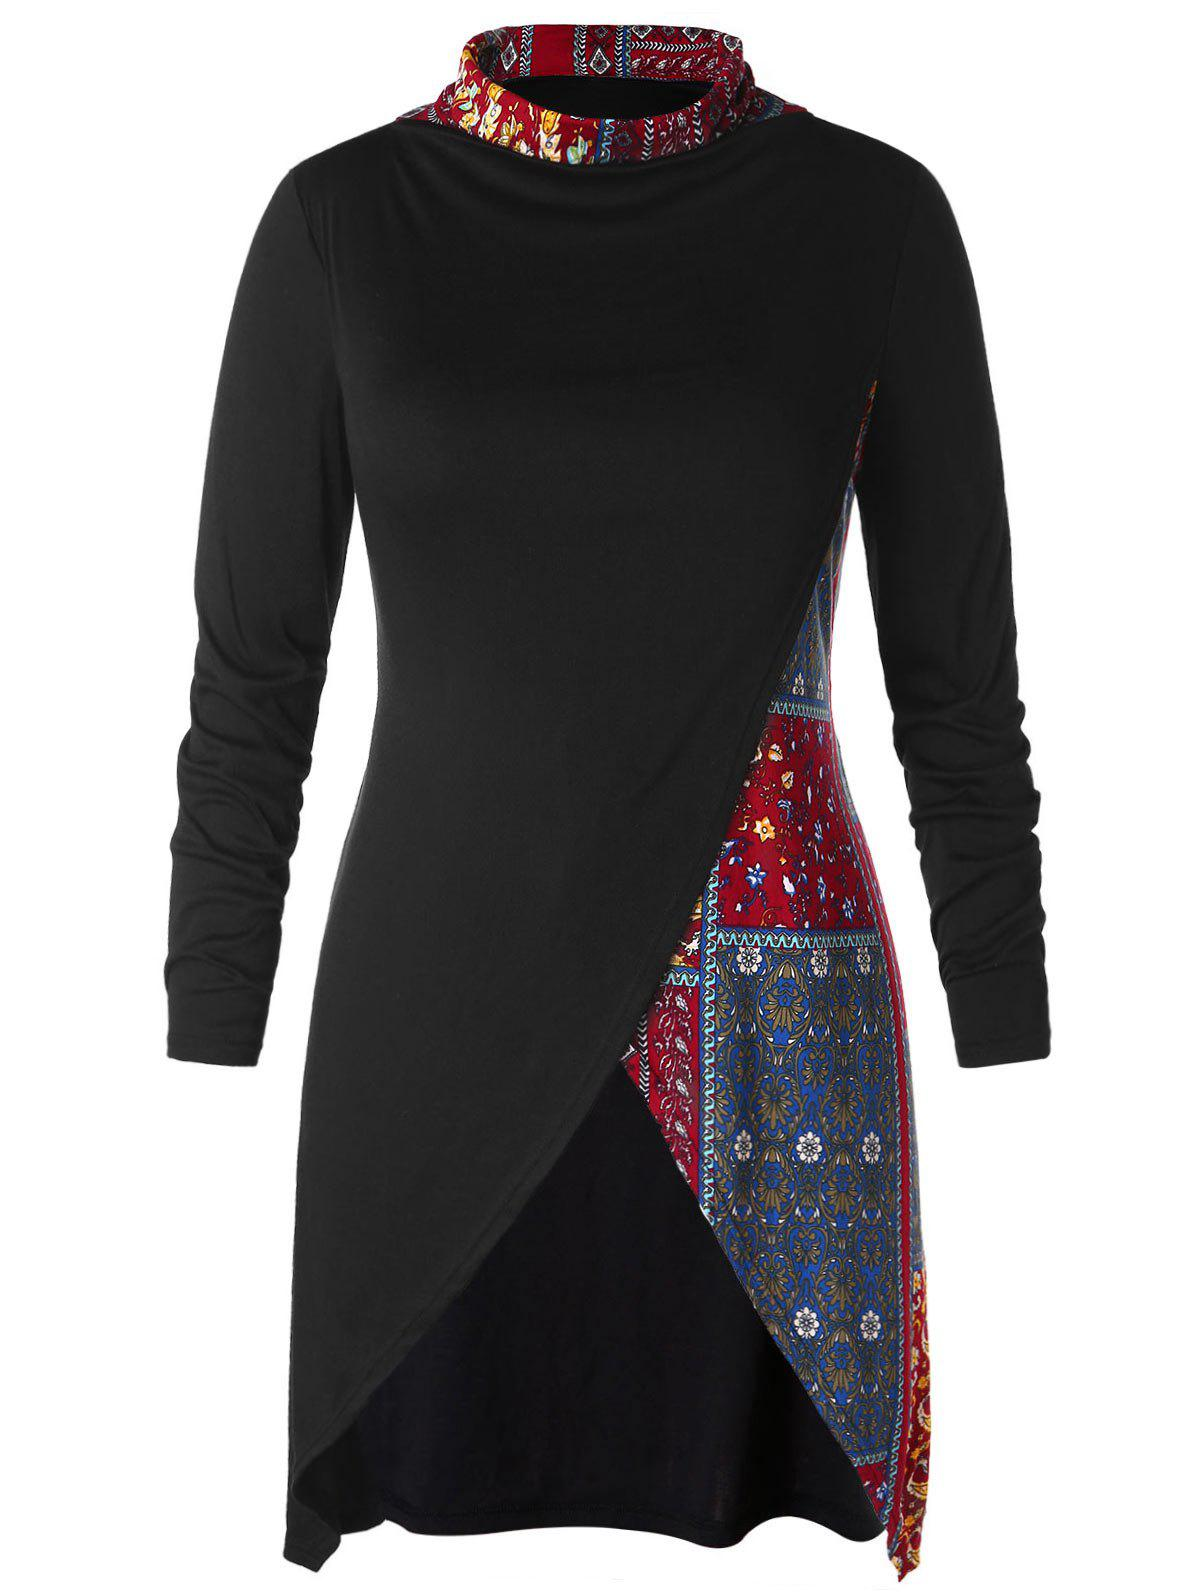 Ethnic Print Plus Size Tunic T-shirt, Black